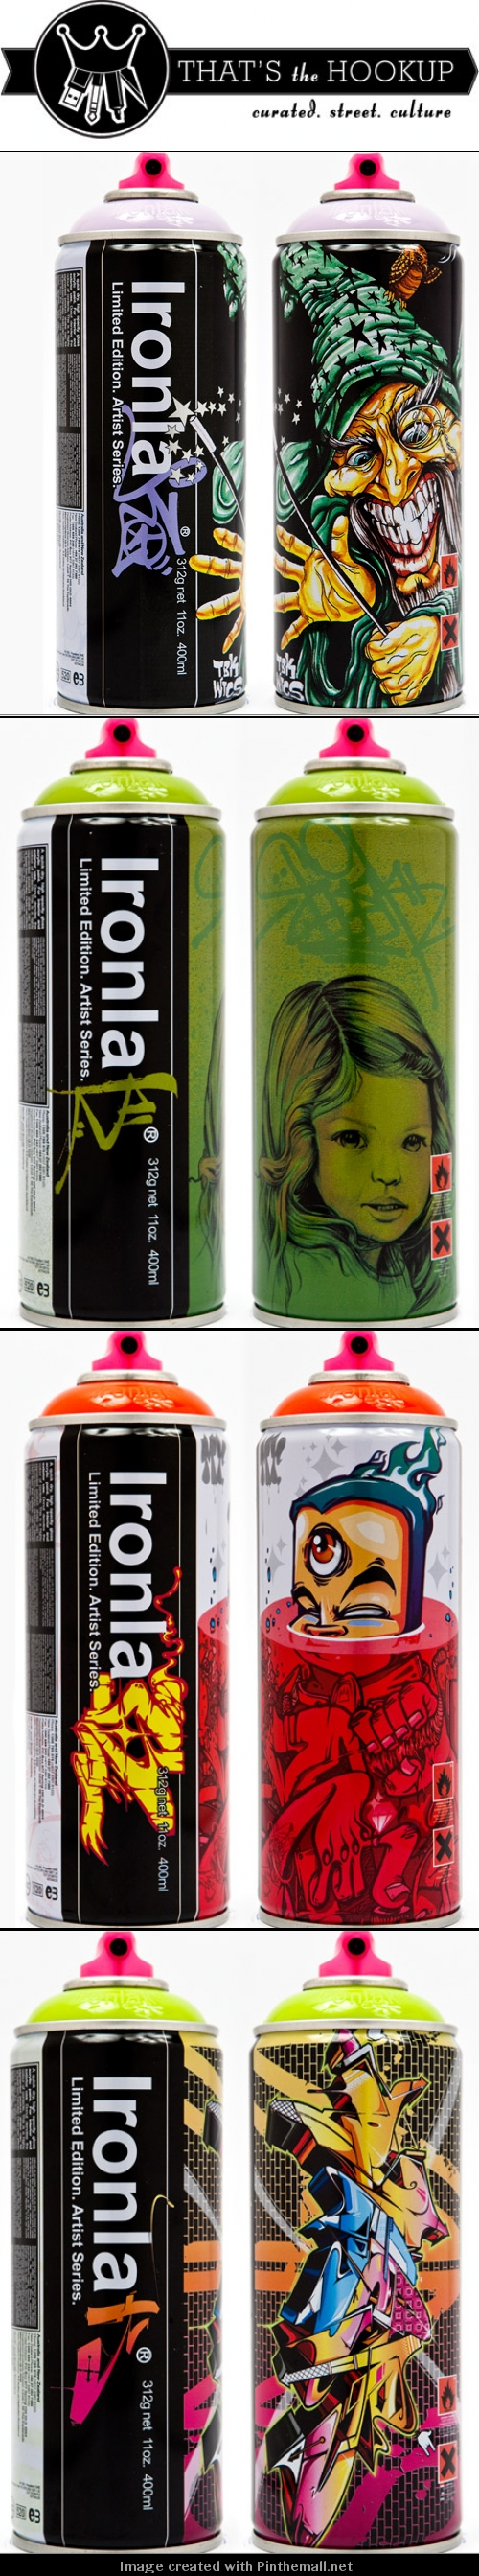 For you @João Fernandes Ironlak's Limited Edition Spray Paint Cans & Colors. Awesome illustrated #packaging #designs PD - created via http://thatsthehookup.com/graffiti/new-for-2010-ironlaks-limited-edition-spray-paint-cans-colors/